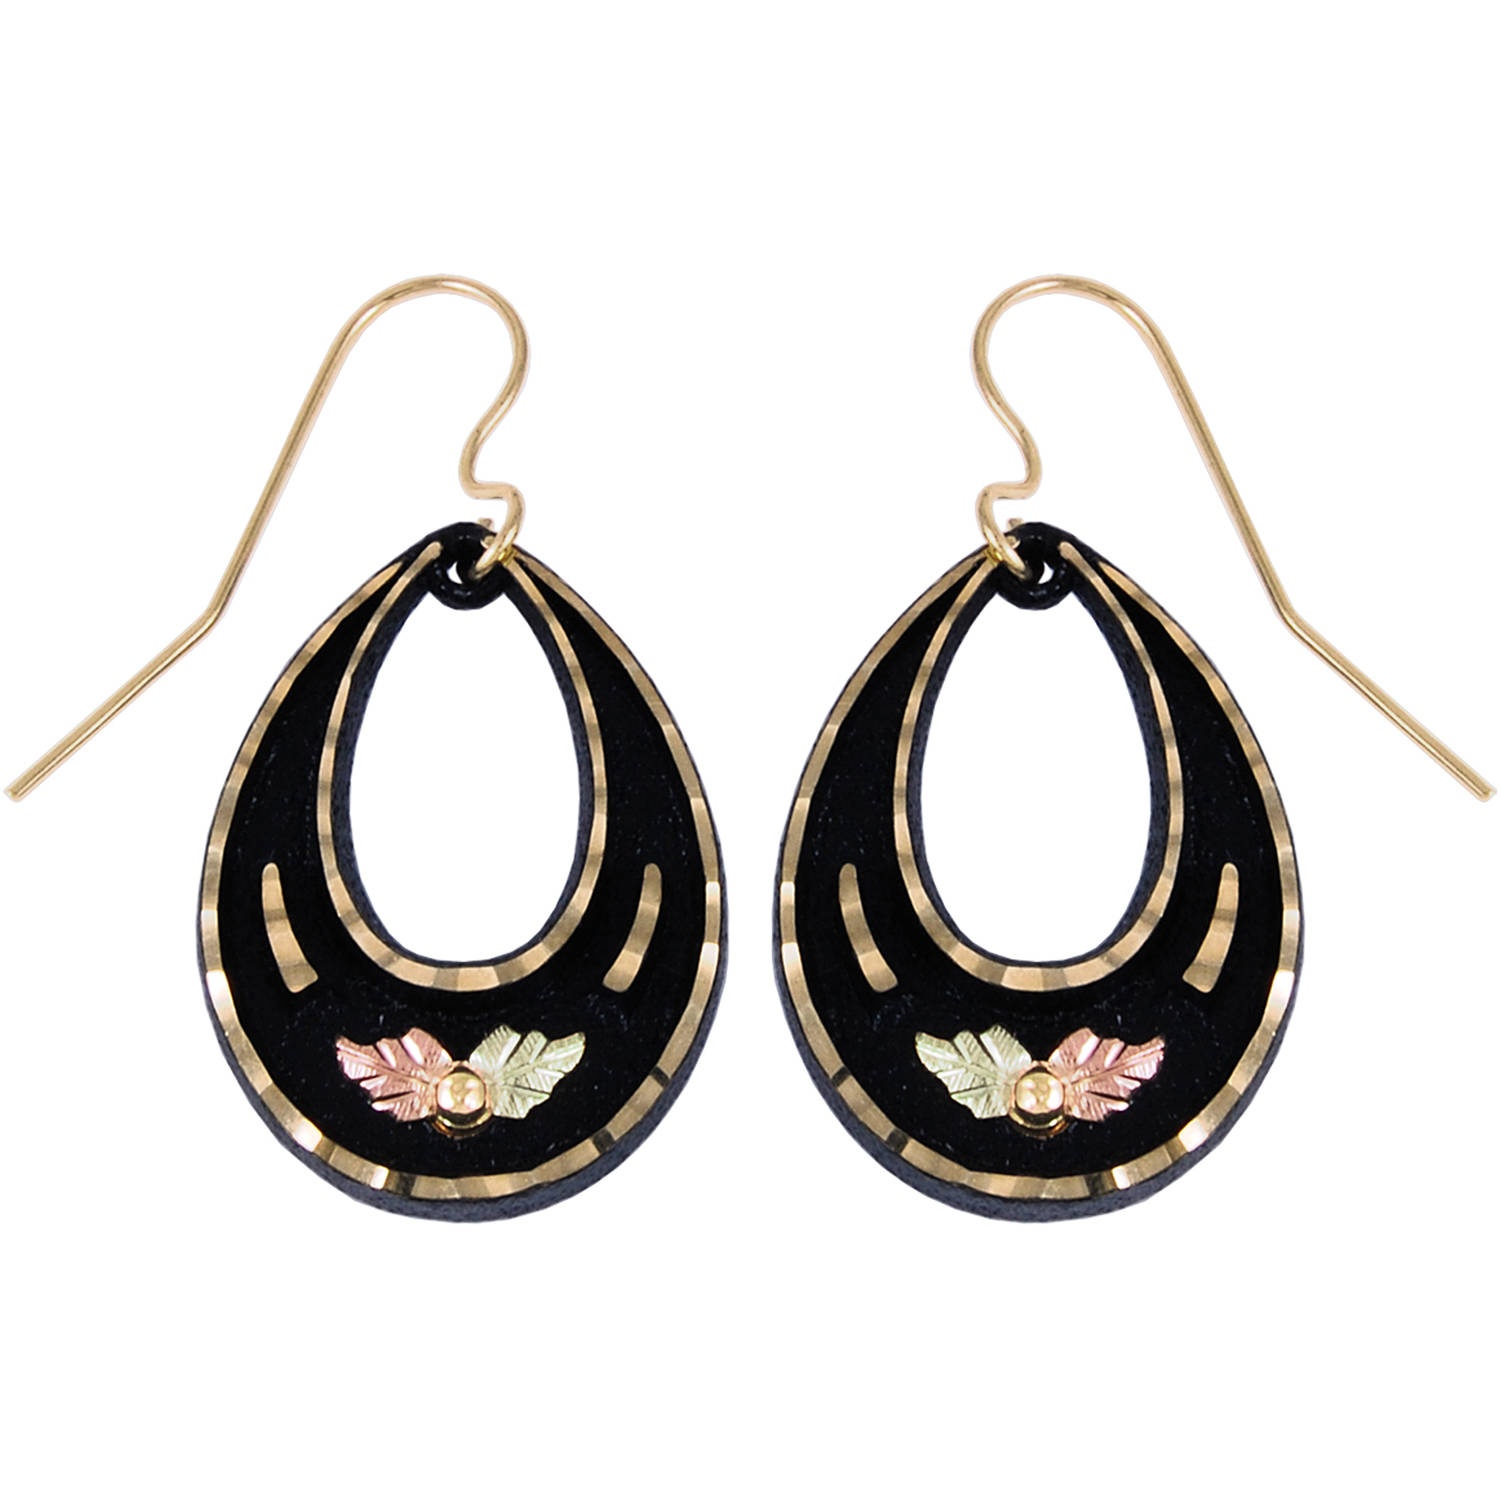 Black Hills Gold 10kt Gold Grape and 12kt Gold Leaf Accents Teardrop Earrings